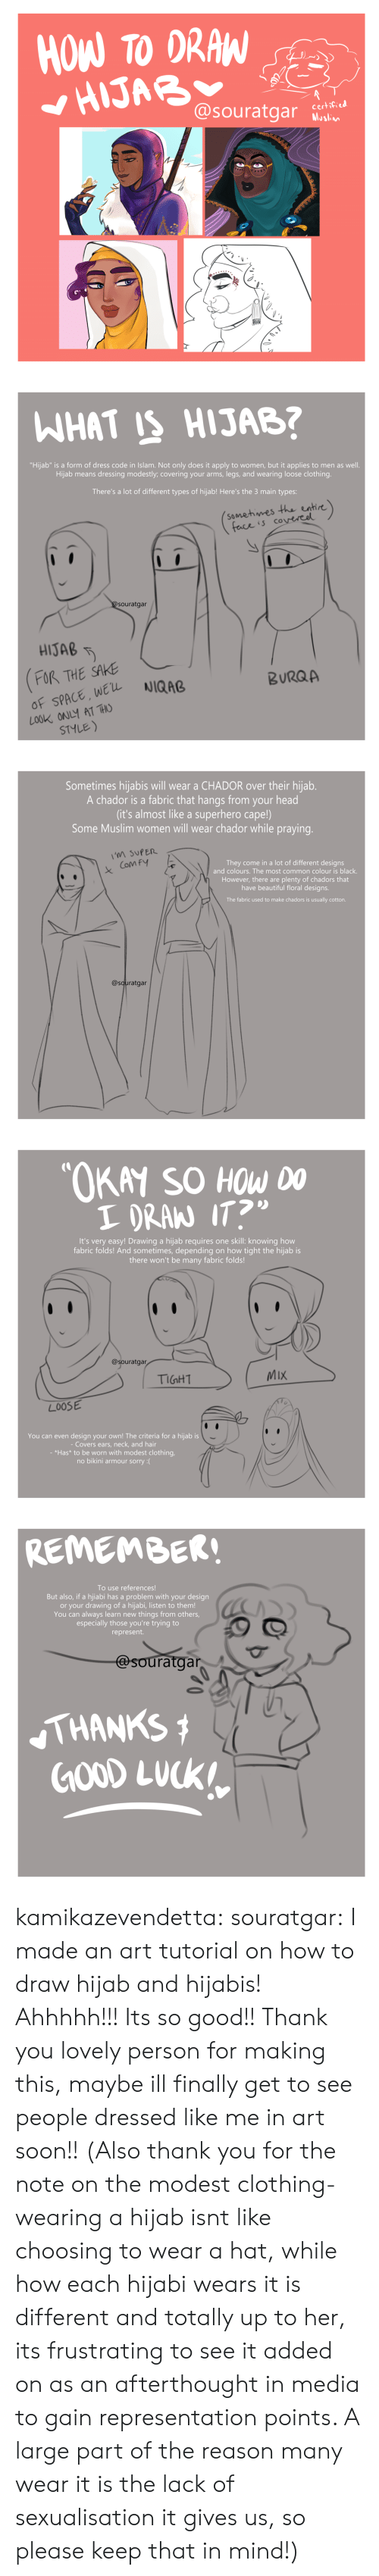 "Its Almost: HOW TO DRAW  HIJAB  @souratgar  certified  Muslim   WHAT IS HIJAB?  ""Hijab"" is a form of dress code in Islam. Not only does it apply to women, but it applies to men as well.  Hijab means dressing modestly; covering your arms, legs, and wearing loose clothing.  There's a lot of different types of hijab! Here's the 3 main types:  (somehimes the entire)  face is covereel  @Souratgar  HIJAB  FOR THE SAKE  OF SPACE, WEL  LOOK ONLY AT THO  STYLE)  NIQAB  BURQA   Sometimes hijabis will wear a CHADOR over their hijab.  A chador is a fabric that hangs from your head  (it's almost like a superhero cape!)  Some Muslim women will wear chador while praying.  M SUPER  They come in a lot of different designs  and colours. The most common colour is black.  Com FY  However, there are plenty of chadors that  have beautiful floral designs.  The fabric used to make chadors is usually cotton.  @souratgar   ""OKAY SO HOW DO  I DRAN IT?  It's very easy! Drawing a hijab requi res one skill: knowing how  fabric folds! And sometimes, depending on how tight the hijab is  there won't be many fabric folds!  @souratgar  MIX  TIGHT  LOOSE  You can even design your own! The criteria for a hijab is  - Covers ears, neck, and hair  - *Has* to be worn with modest clothing,  no bikini armour sorry :(   REMEMBER!  To use references!  But also, if a hijiabi has a problem with your design  or your drawing of a hijabi, listen to them!  You can always learn new things from others,  especially those you're trying to  represent.  @souratgar  THANKS  GOOD LUCK kamikazevendetta:  souratgar: I made an art tutorial on how to draw hijab and hijabis! Ahhhhh!!! Its so good!! Thank you lovely person for making this, maybe ill finally get to see people dressed like me in art soon!!   (Also thank you for the note on the modest clothing- wearing a hijab isnt like choosing to wear a hat, while how each hijabi wears it is different and totally up to her, its frustrating to see it added on as an afterthought in media to gain representation points. A large part of the reason many wear it is the lack of sexualisation it gives us, so please keep that in mind!)"